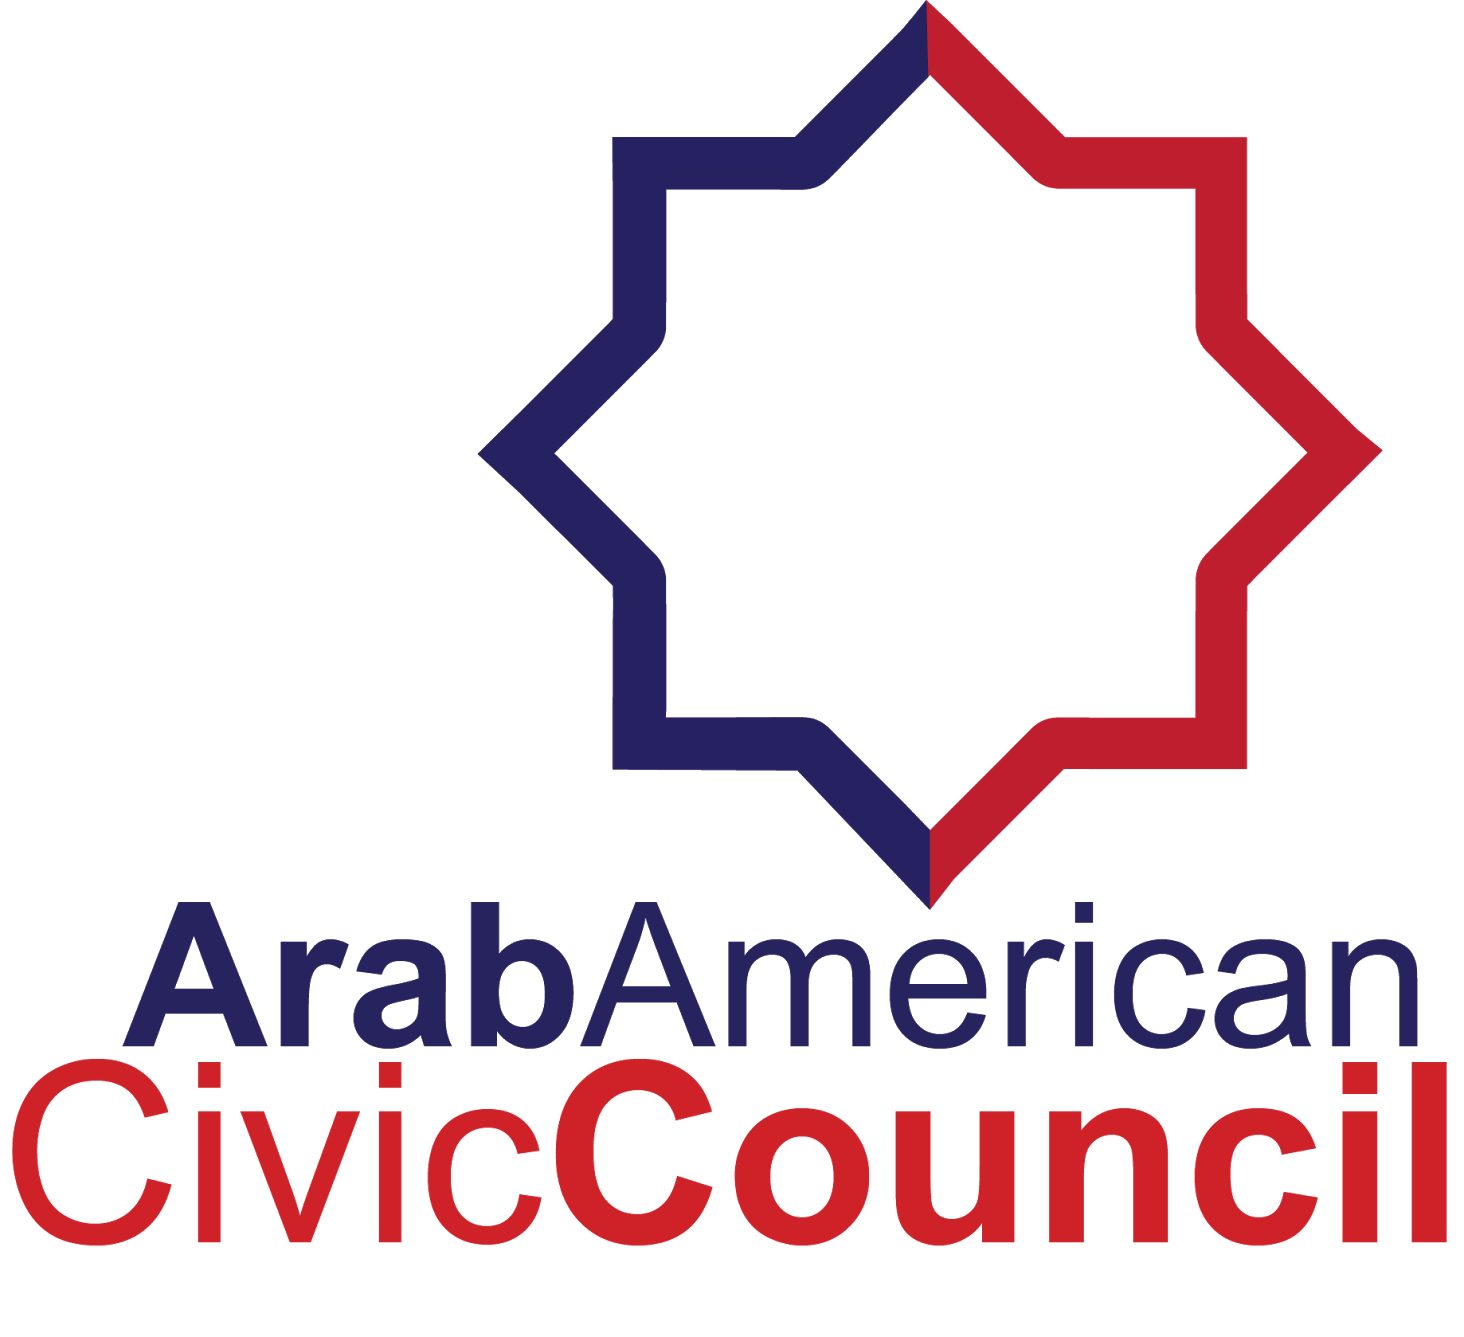 Arab American Civic Council